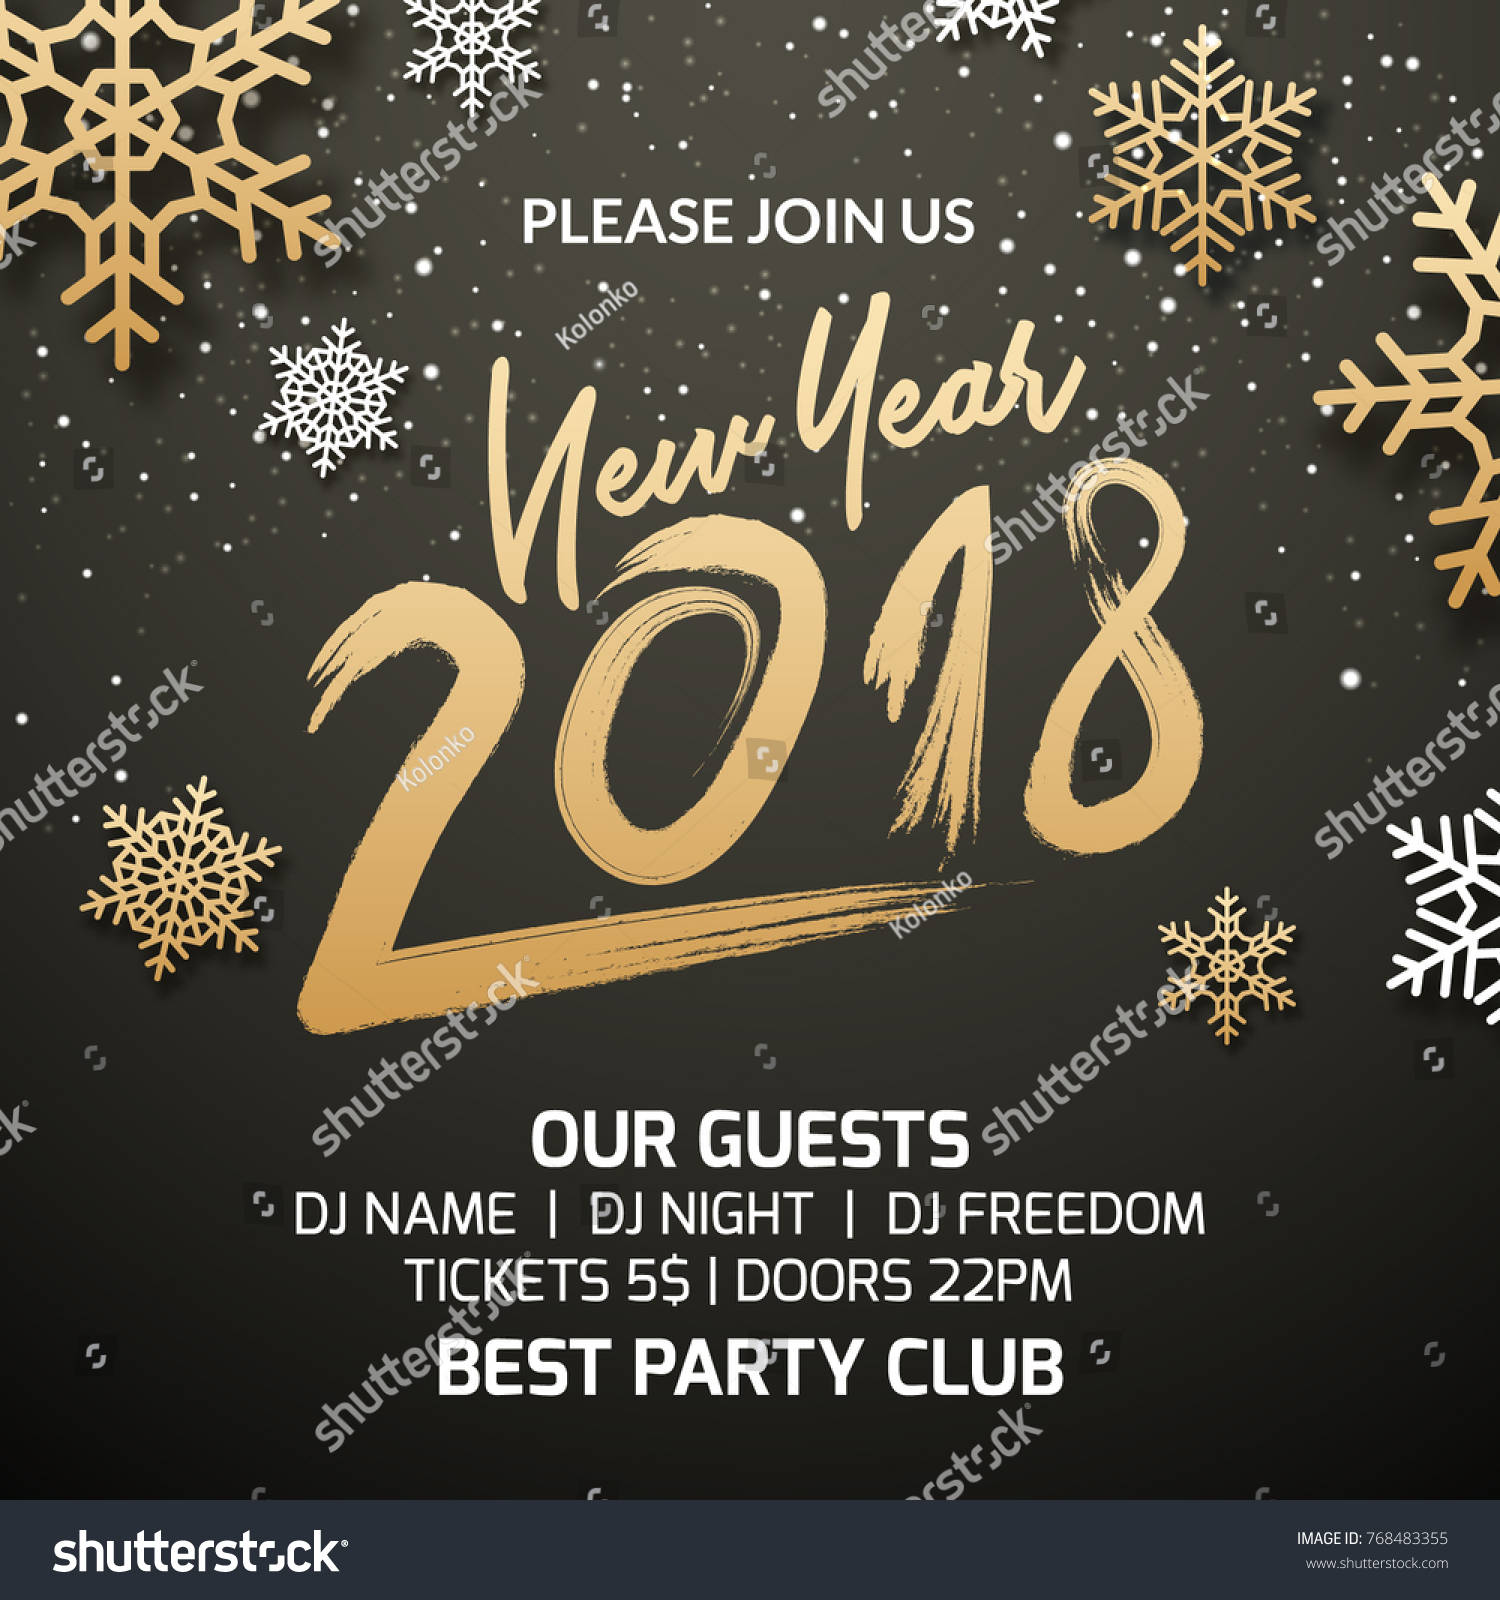 New year 2018 party poster invitation stock vector royalty free new year 2018 party poster invitation decoration design xmas holiday template background with snowflakes stopboris Gallery